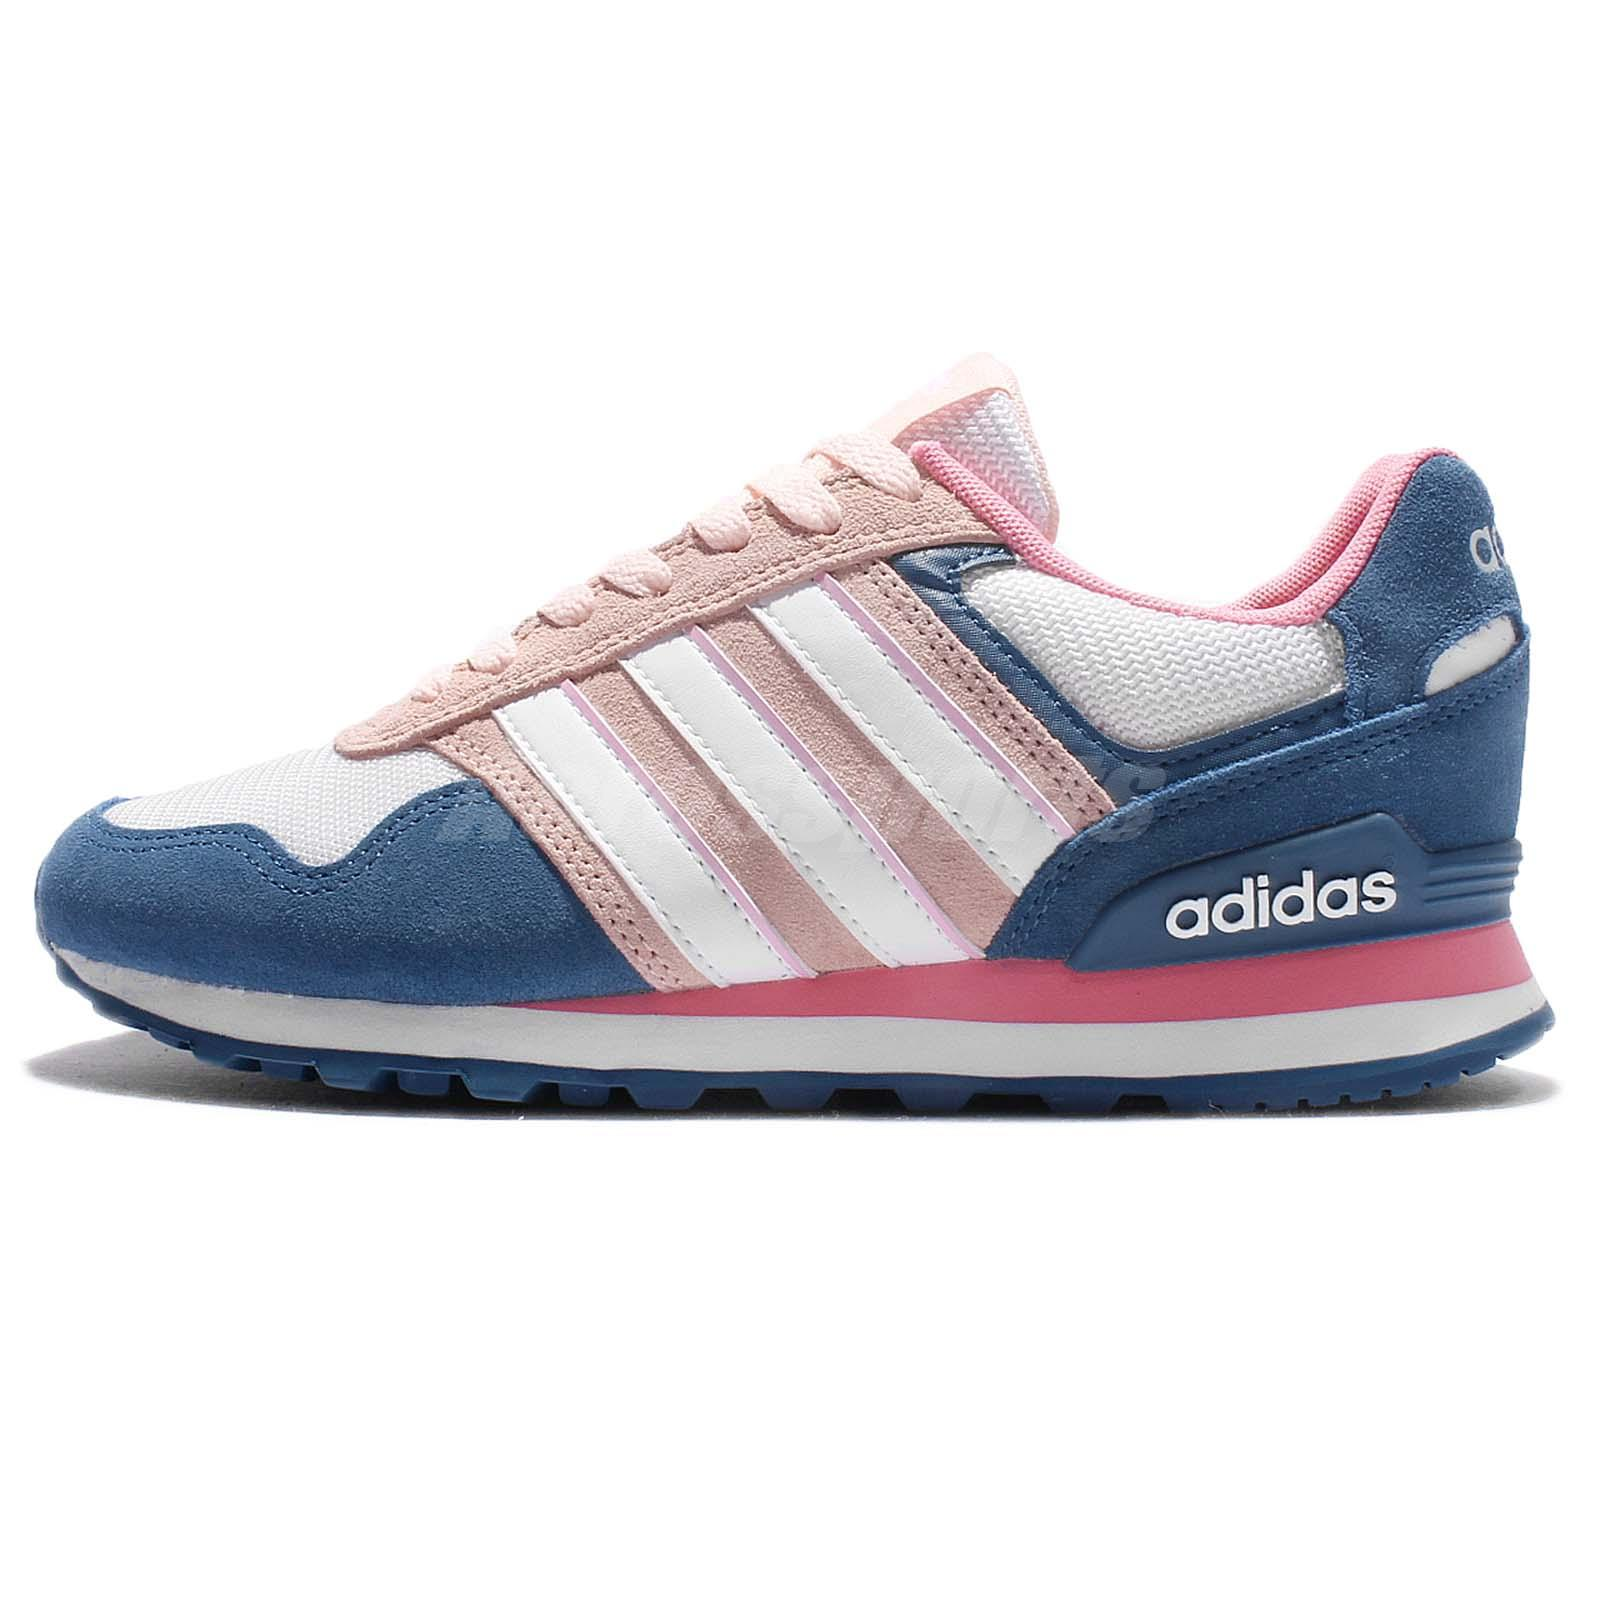 adidas Neo Label 10K W Blue Pink White Women Running Shoes Sneakers BB9804